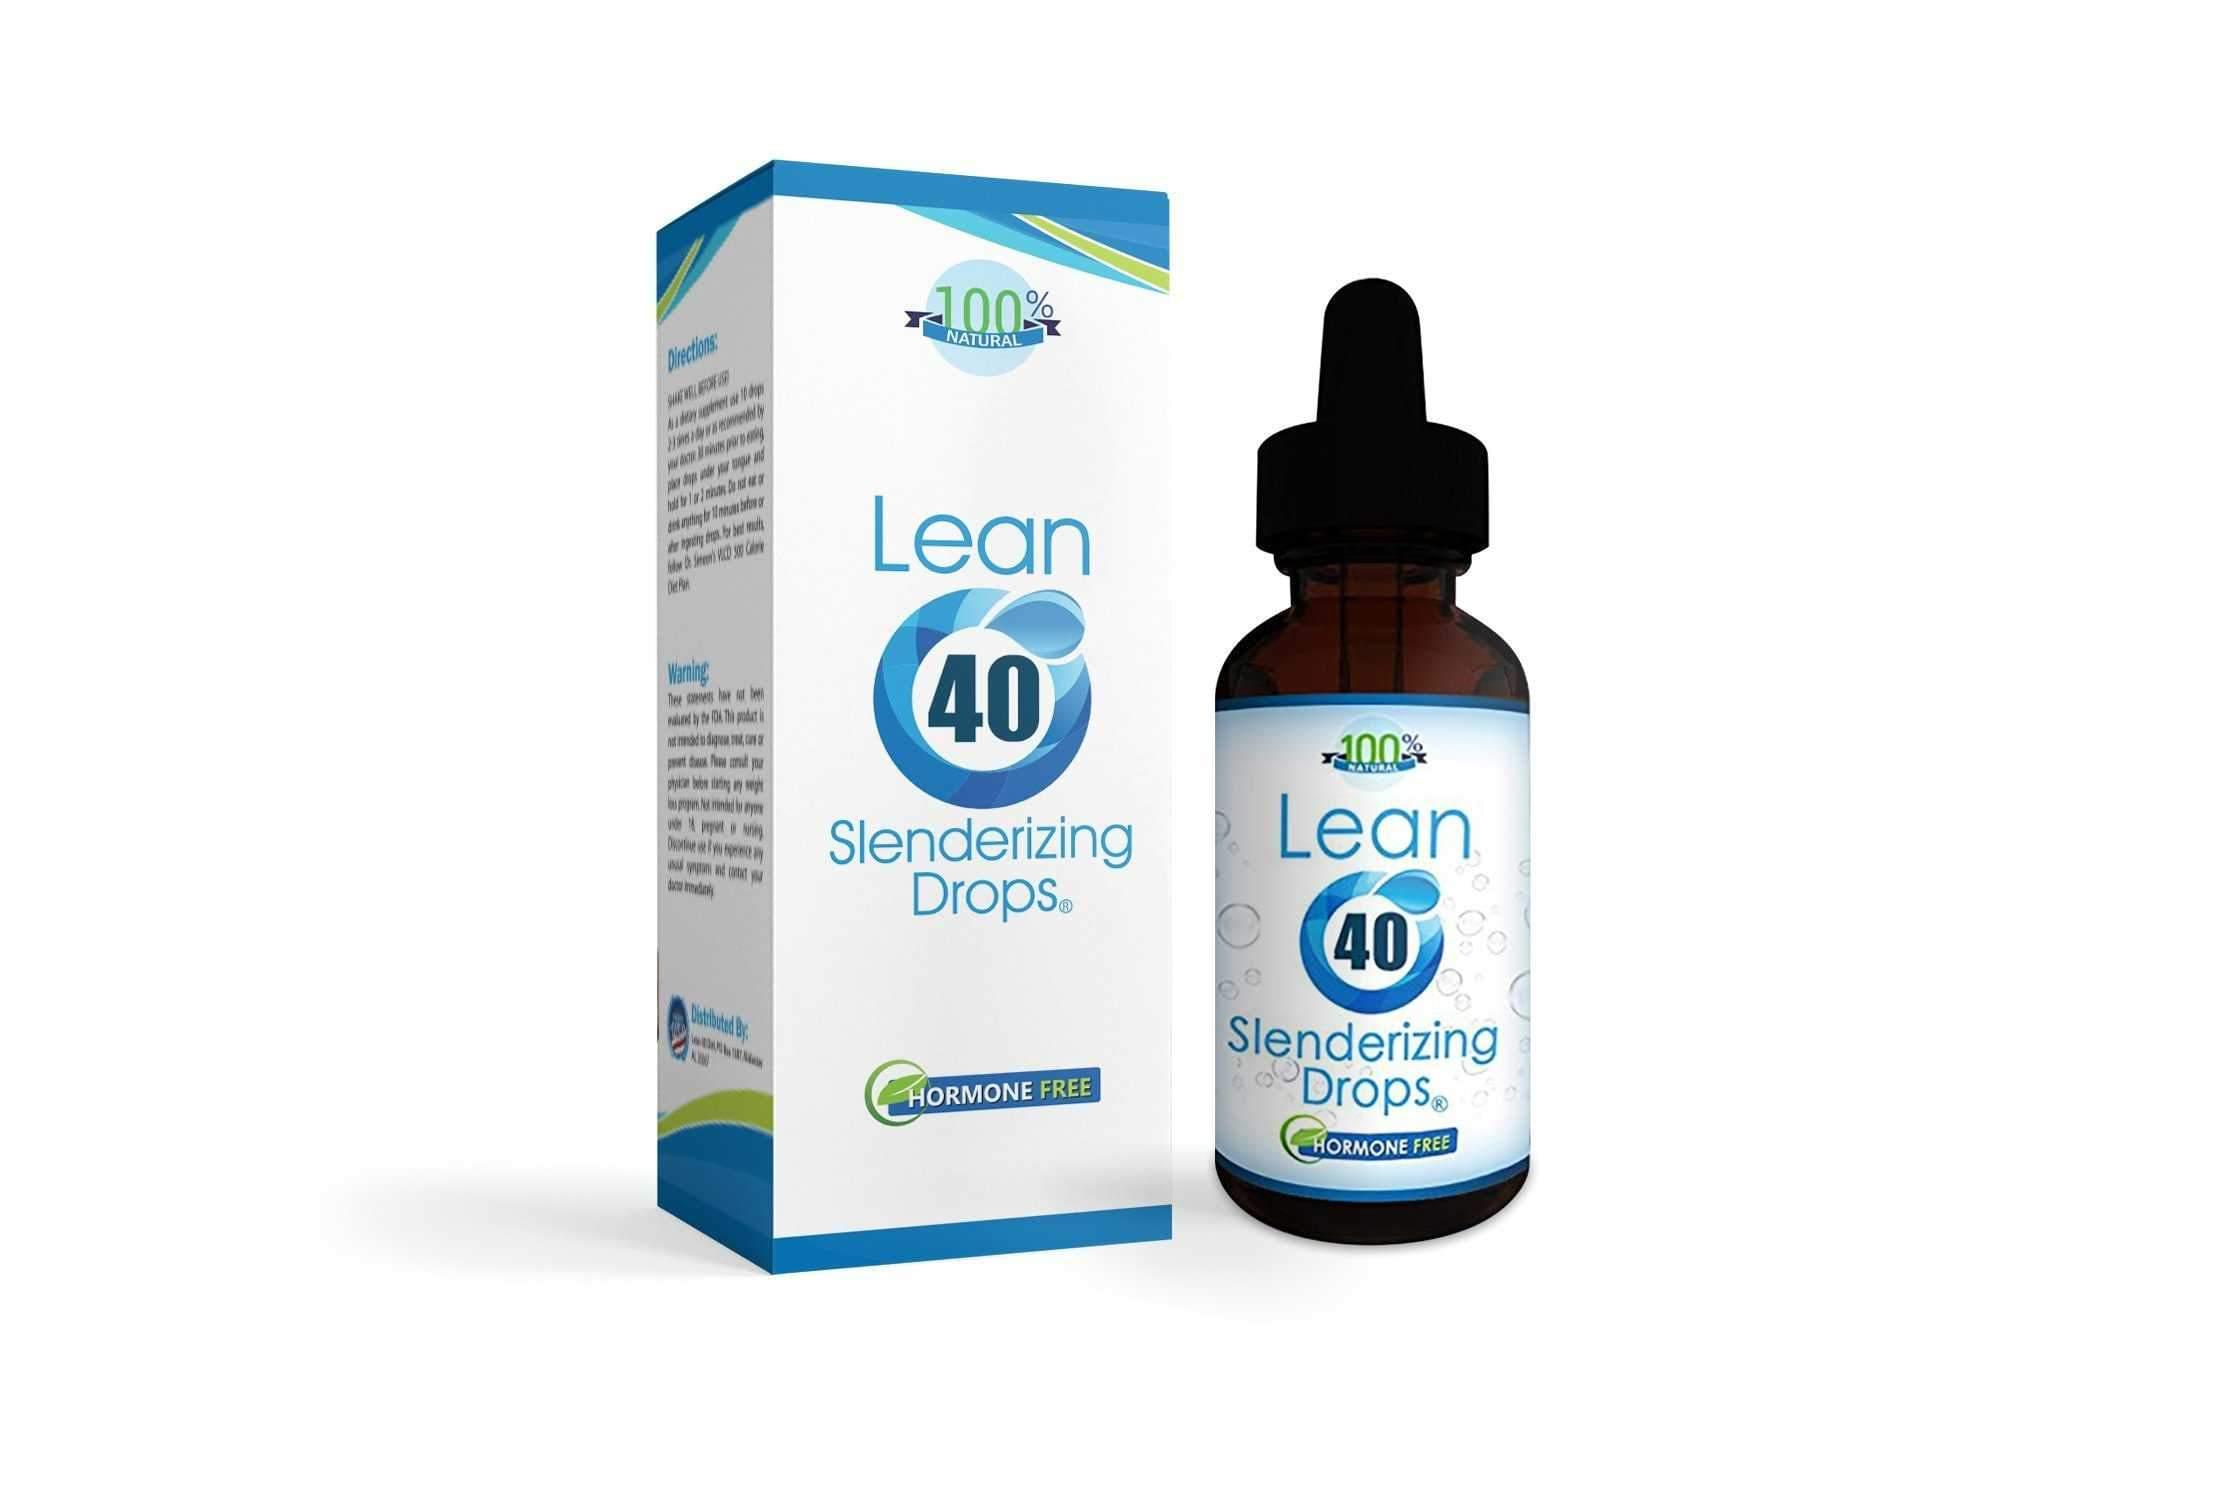 HCG Diet Drops For Weight Loss - 21 Day Program - Lean 40